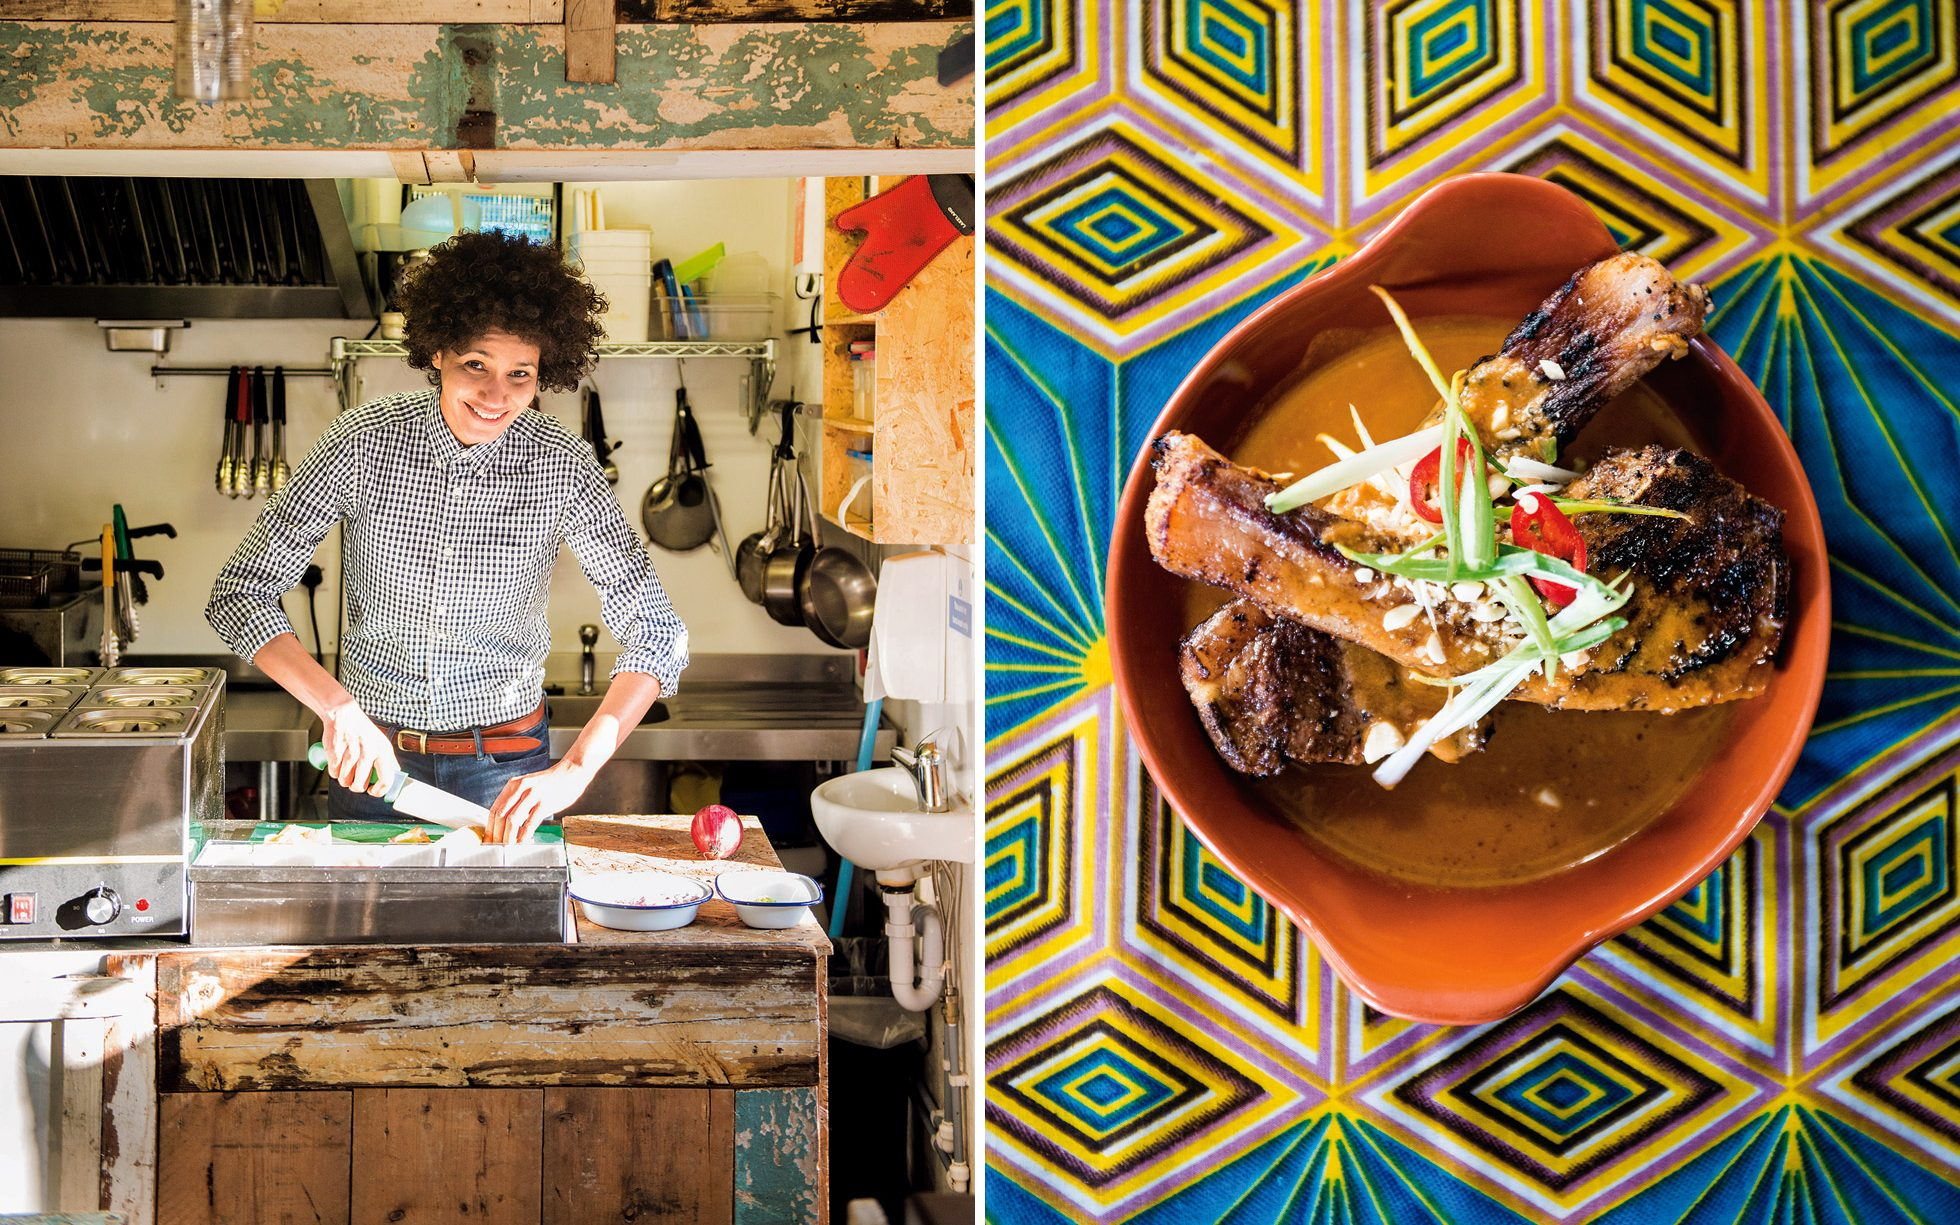 Zoes Ghana Kitchen the chef bringing West African food